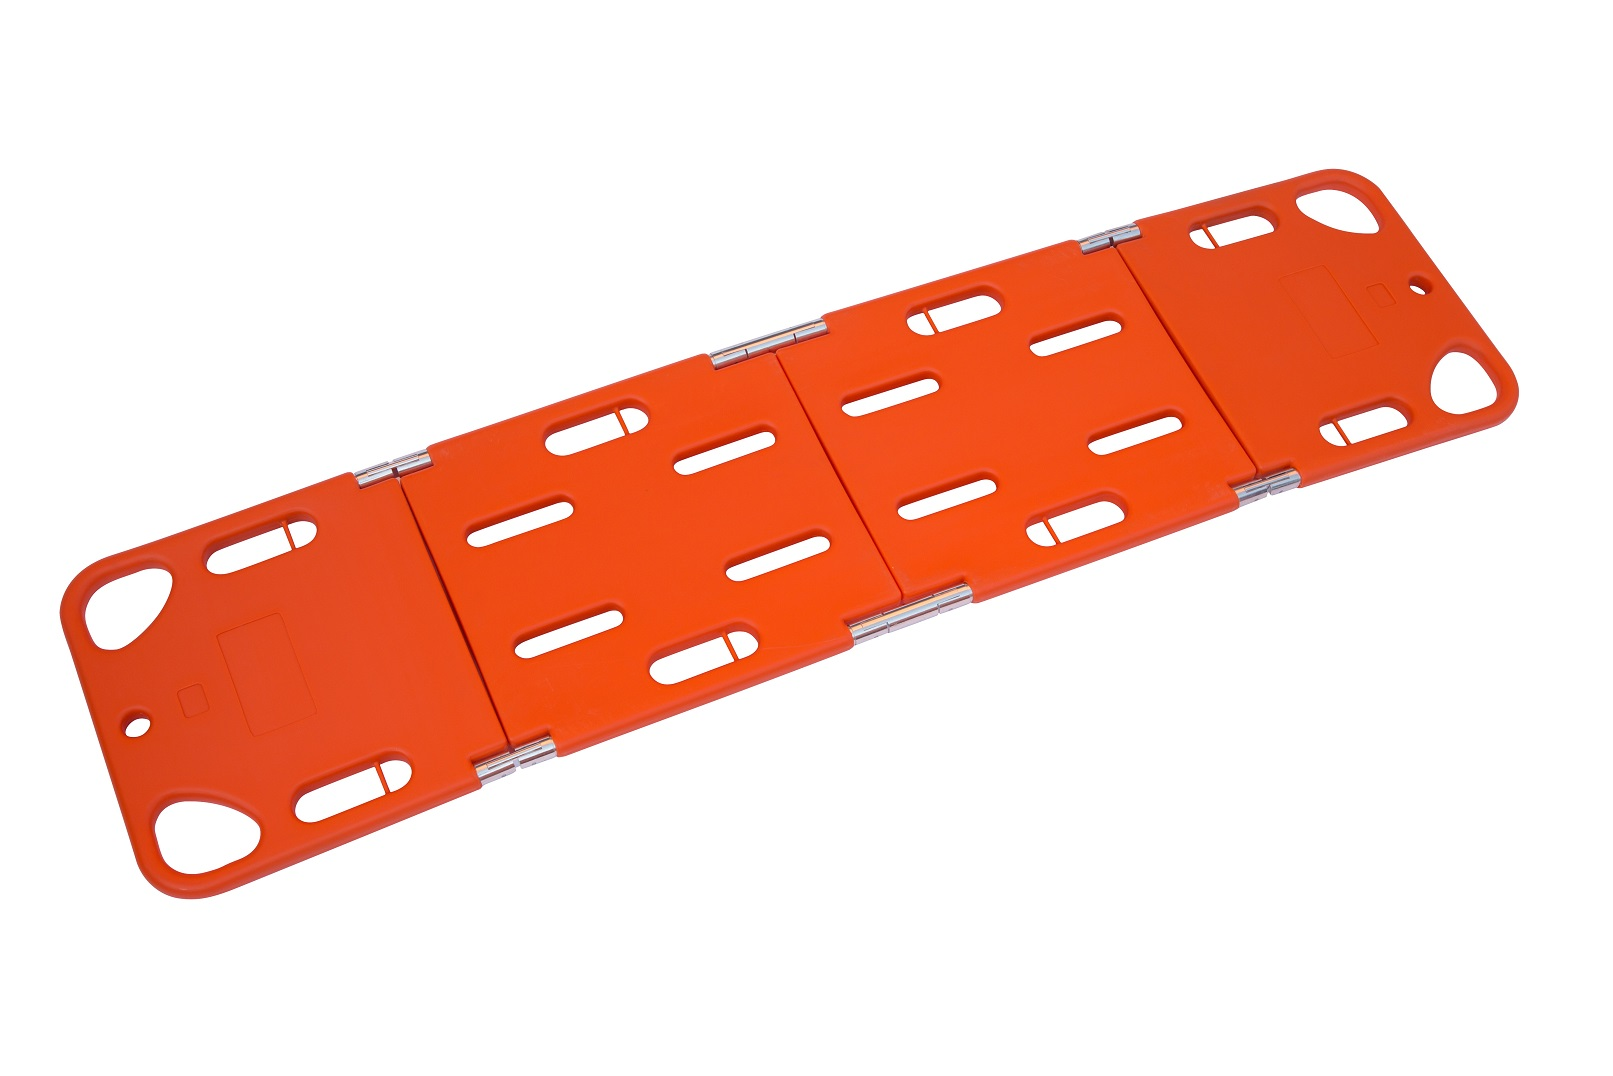 HS-A006 4 fold plastic portable spine board